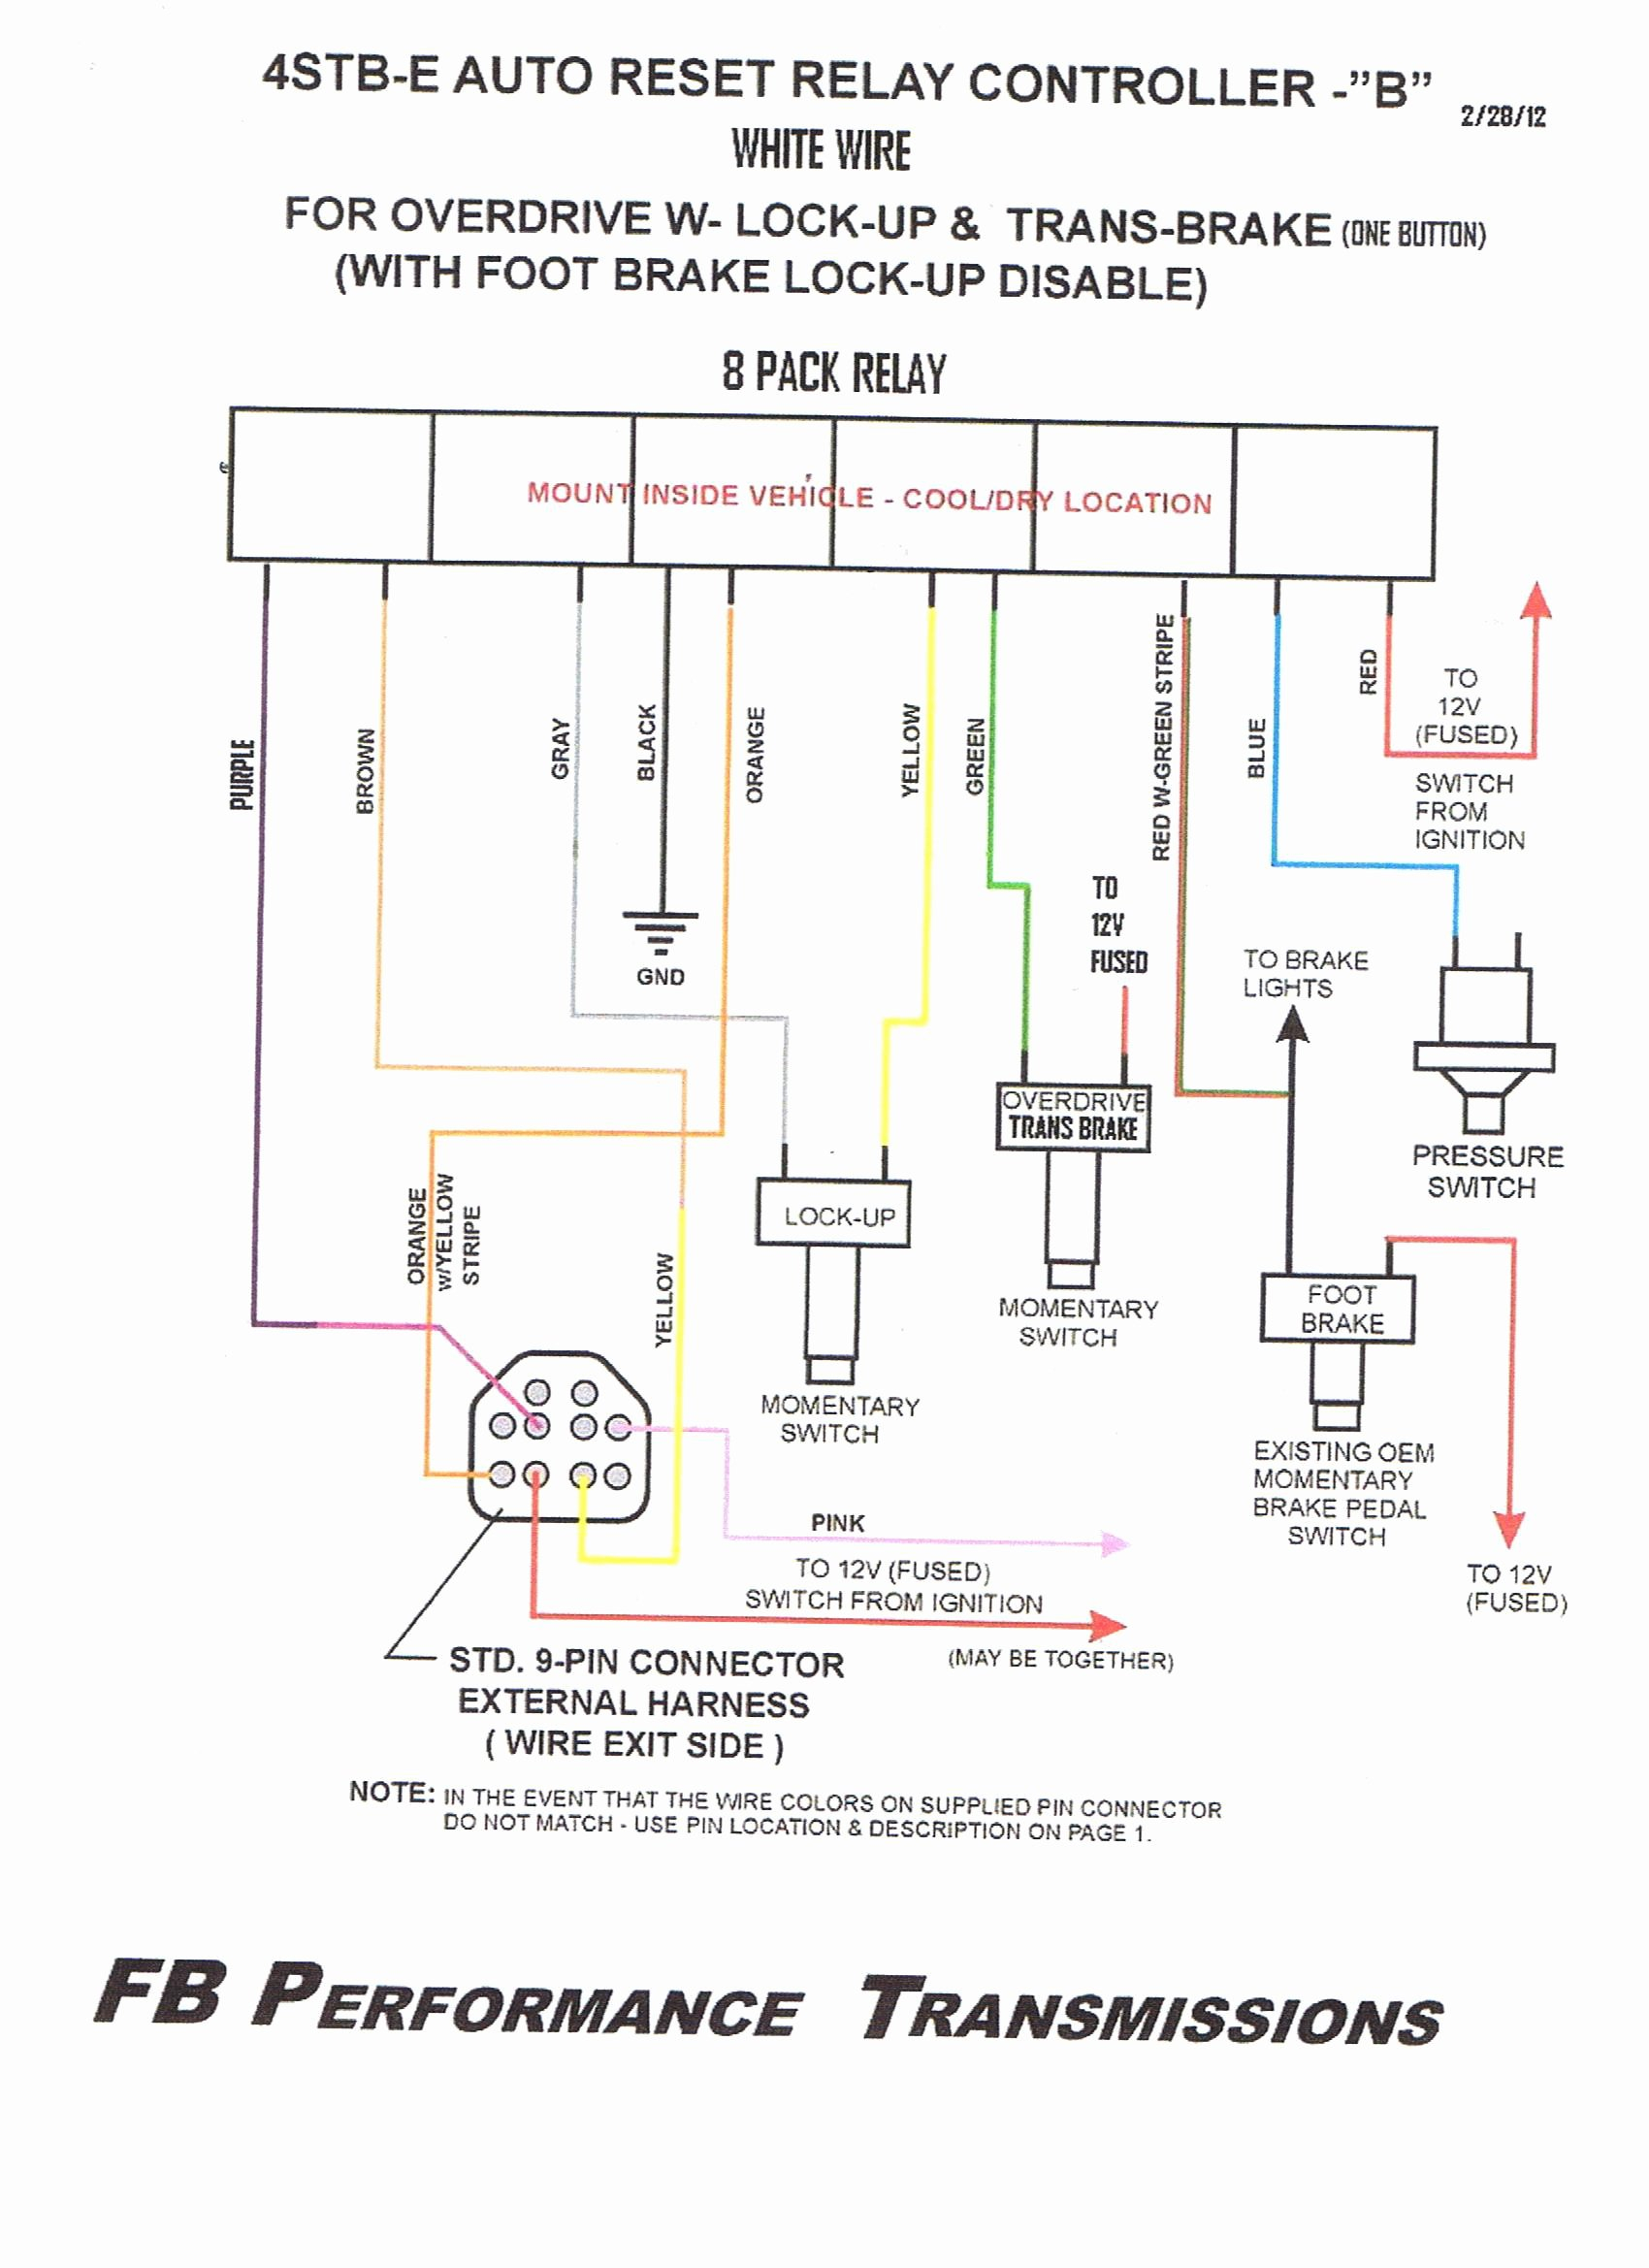 fox body wiring harness diagram Collection-t3650 wiring harness all kind of wiring diagrams u2022 rh viewdress T3650 in Foxbody Mustang 3650 Transmission 10-l